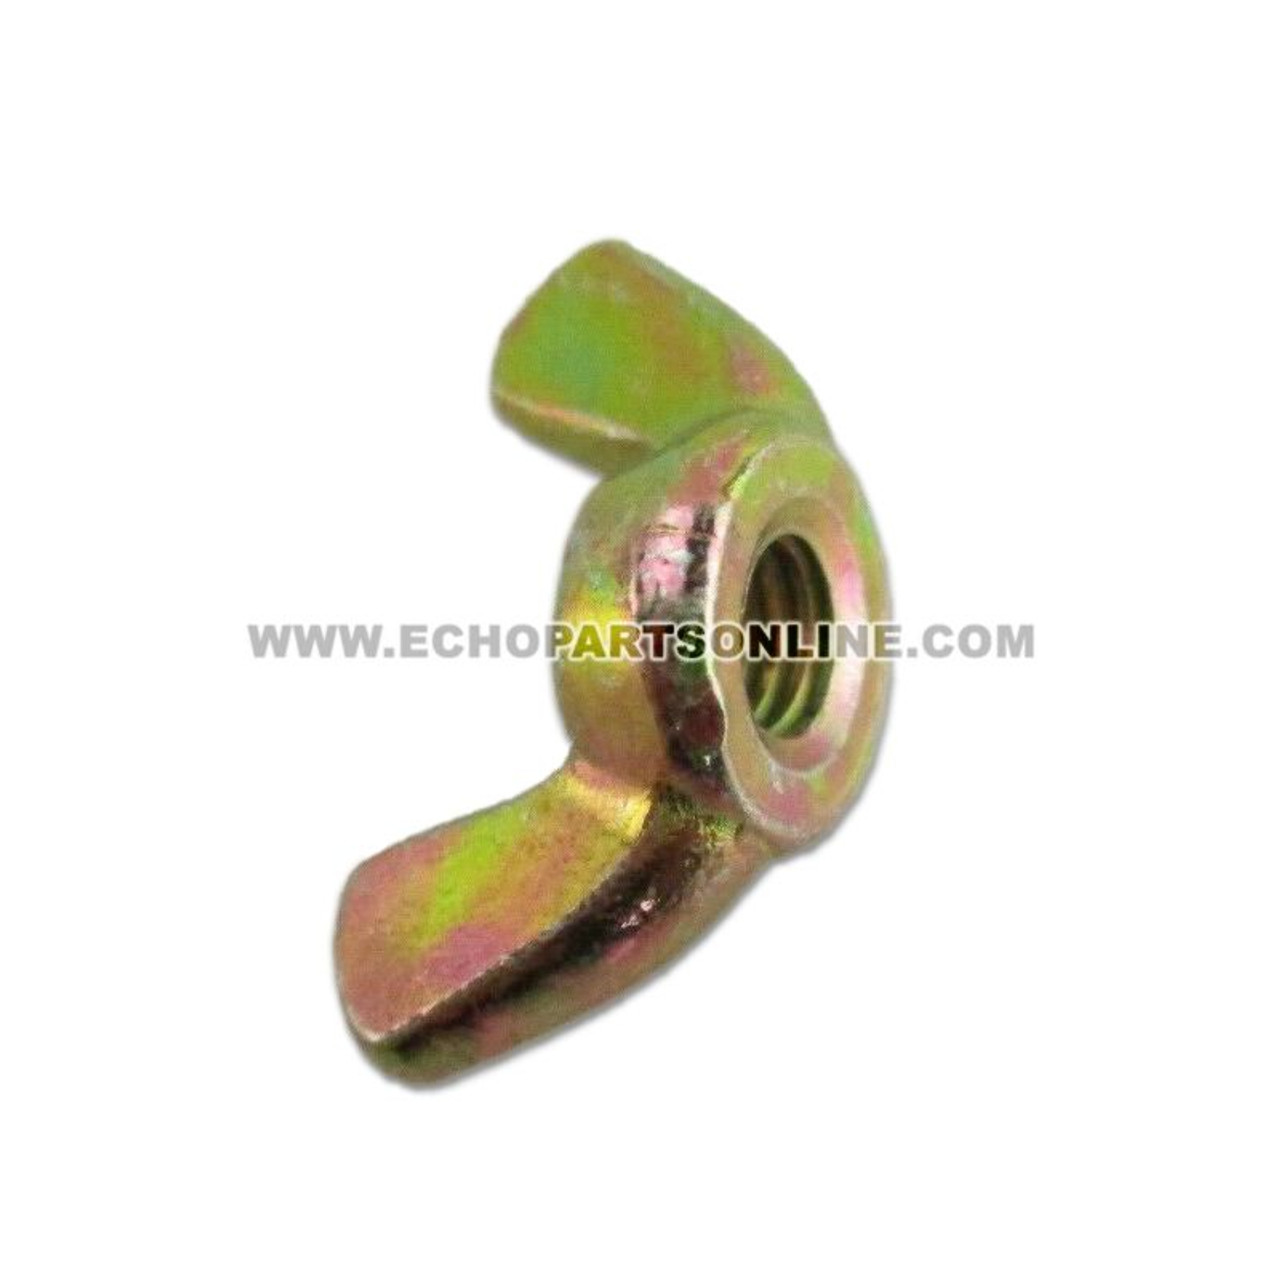 Shindaiwa 90052500006 NUT Echo WING